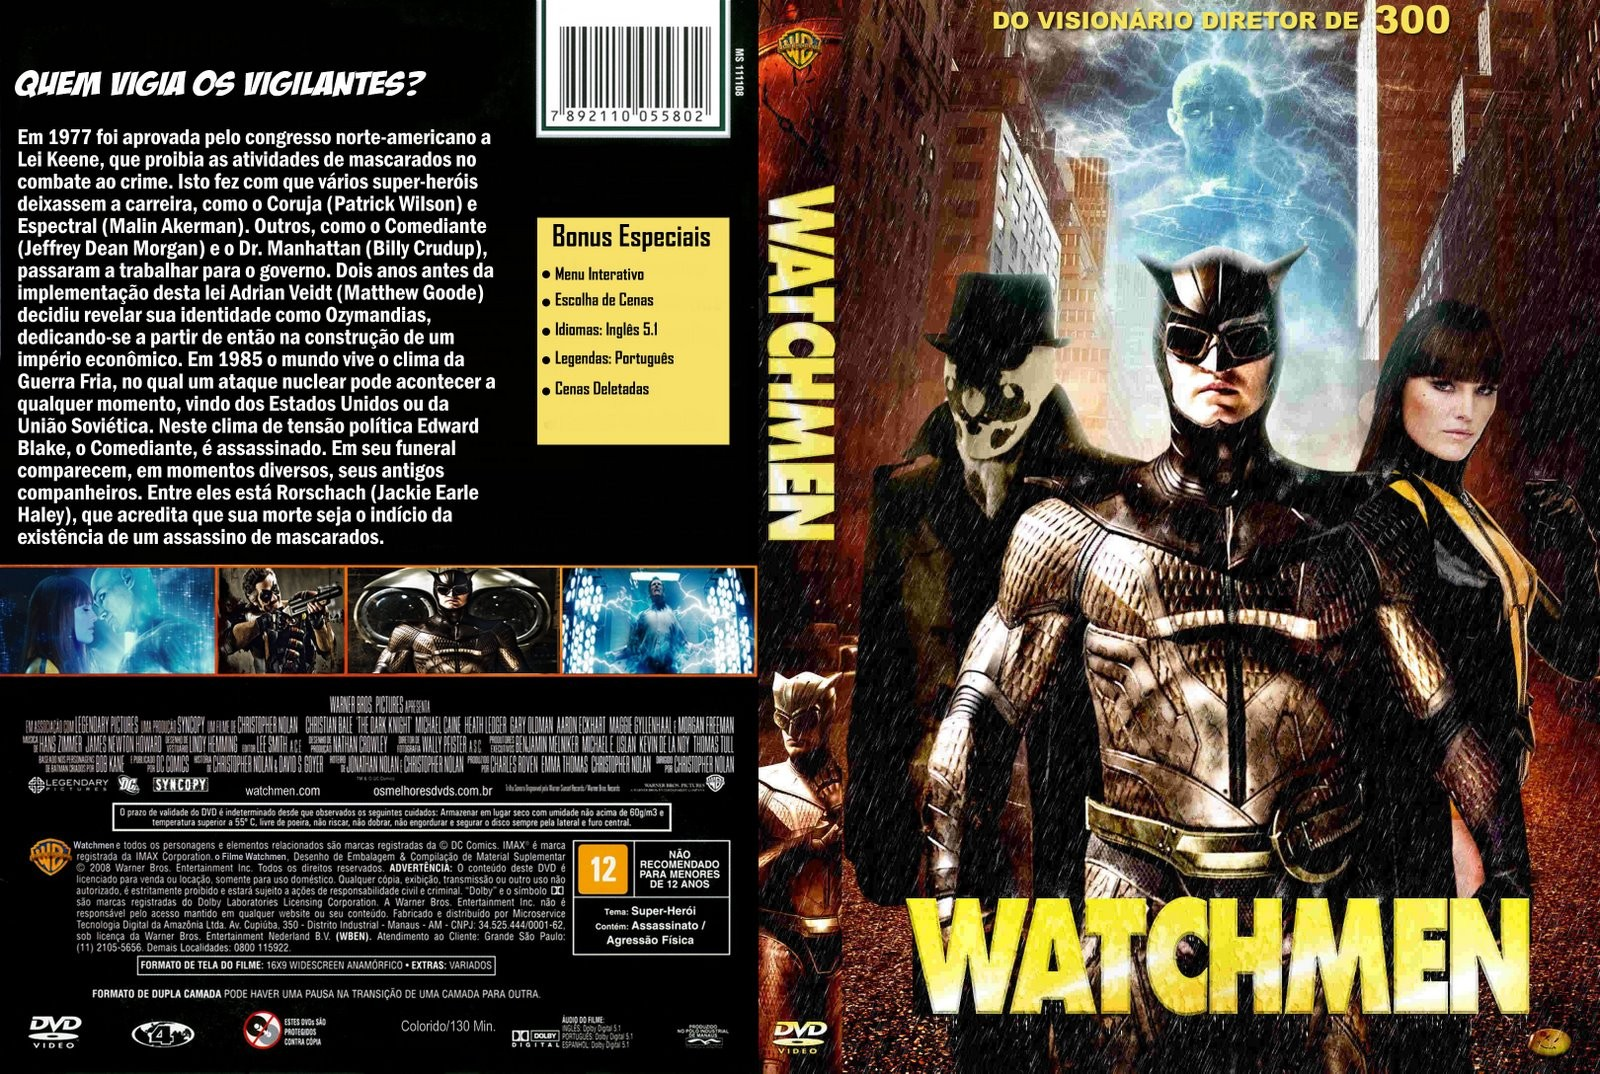 legenda em portugues do filme watchmen